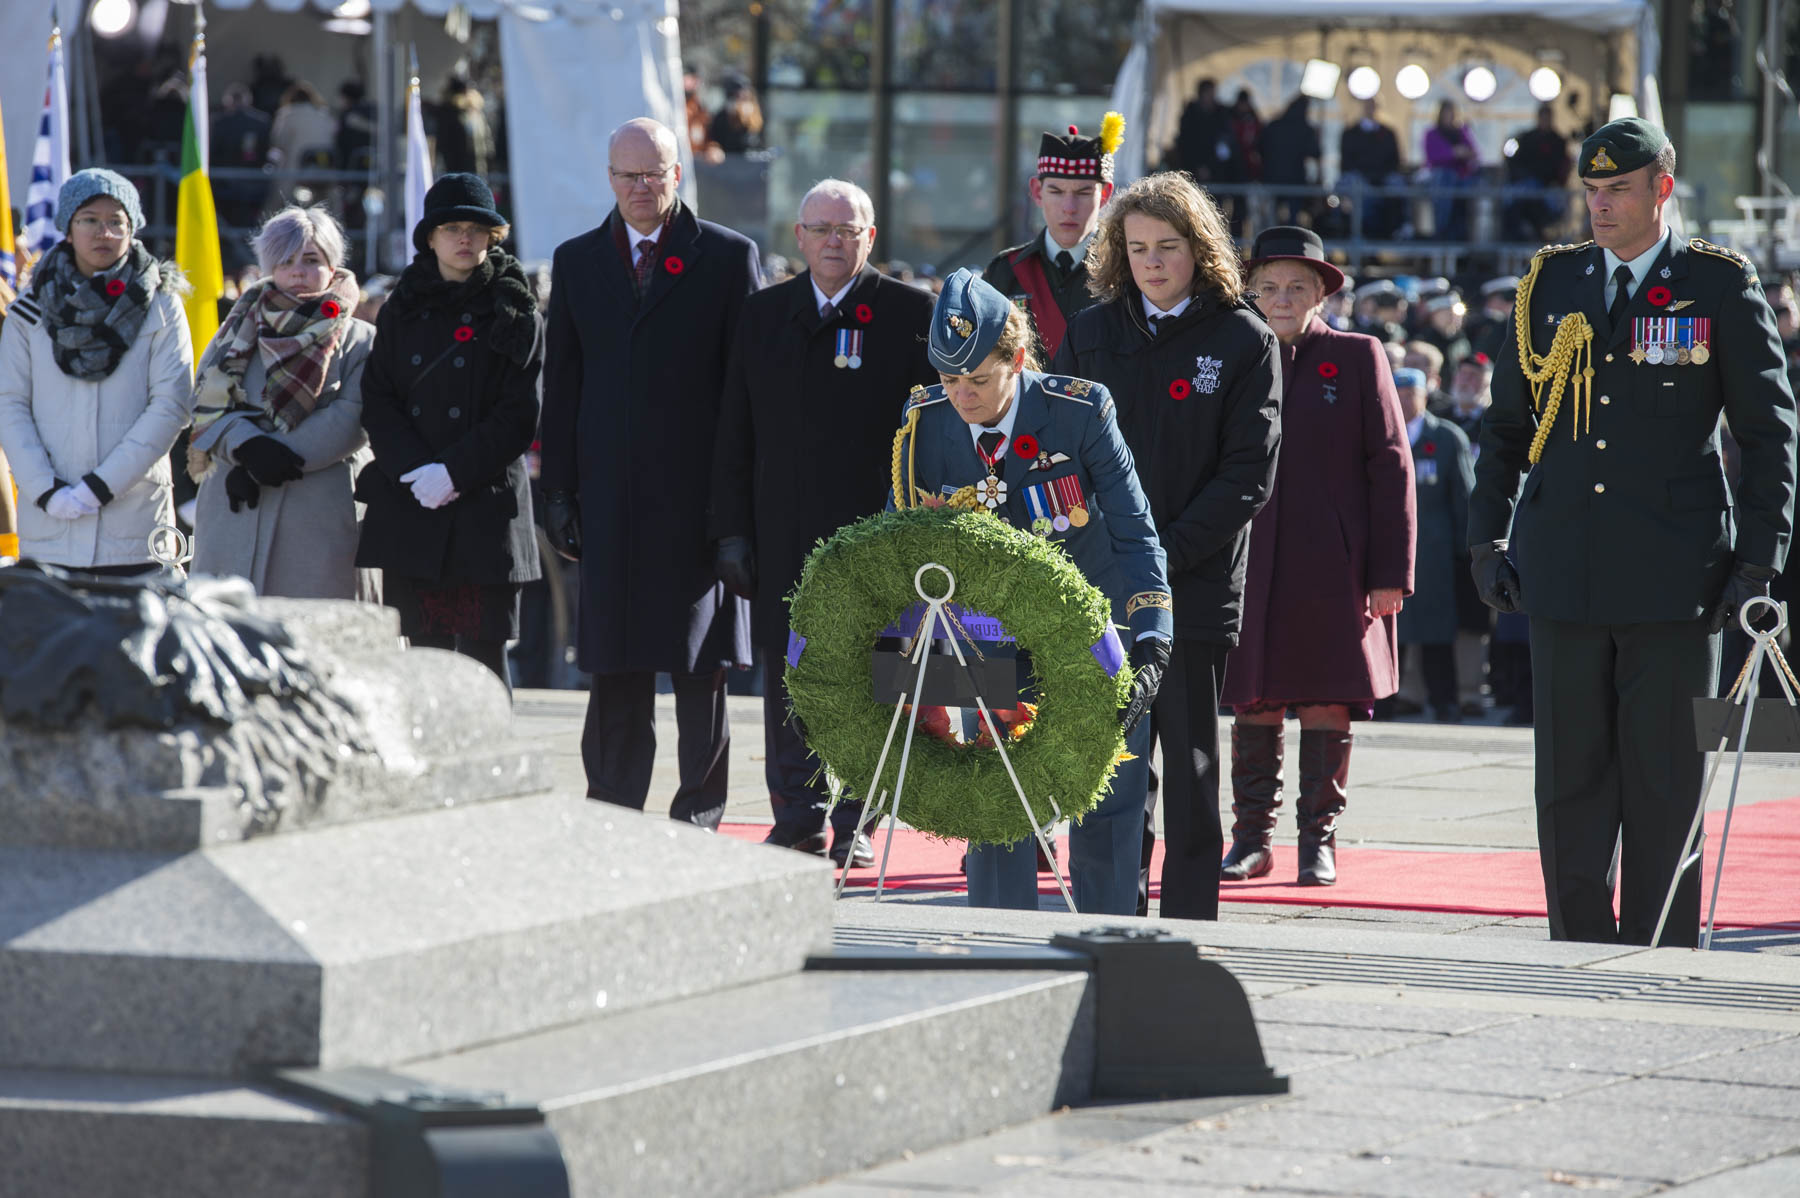 Her Excellency laid a wreath on behalf of the people of Canada.